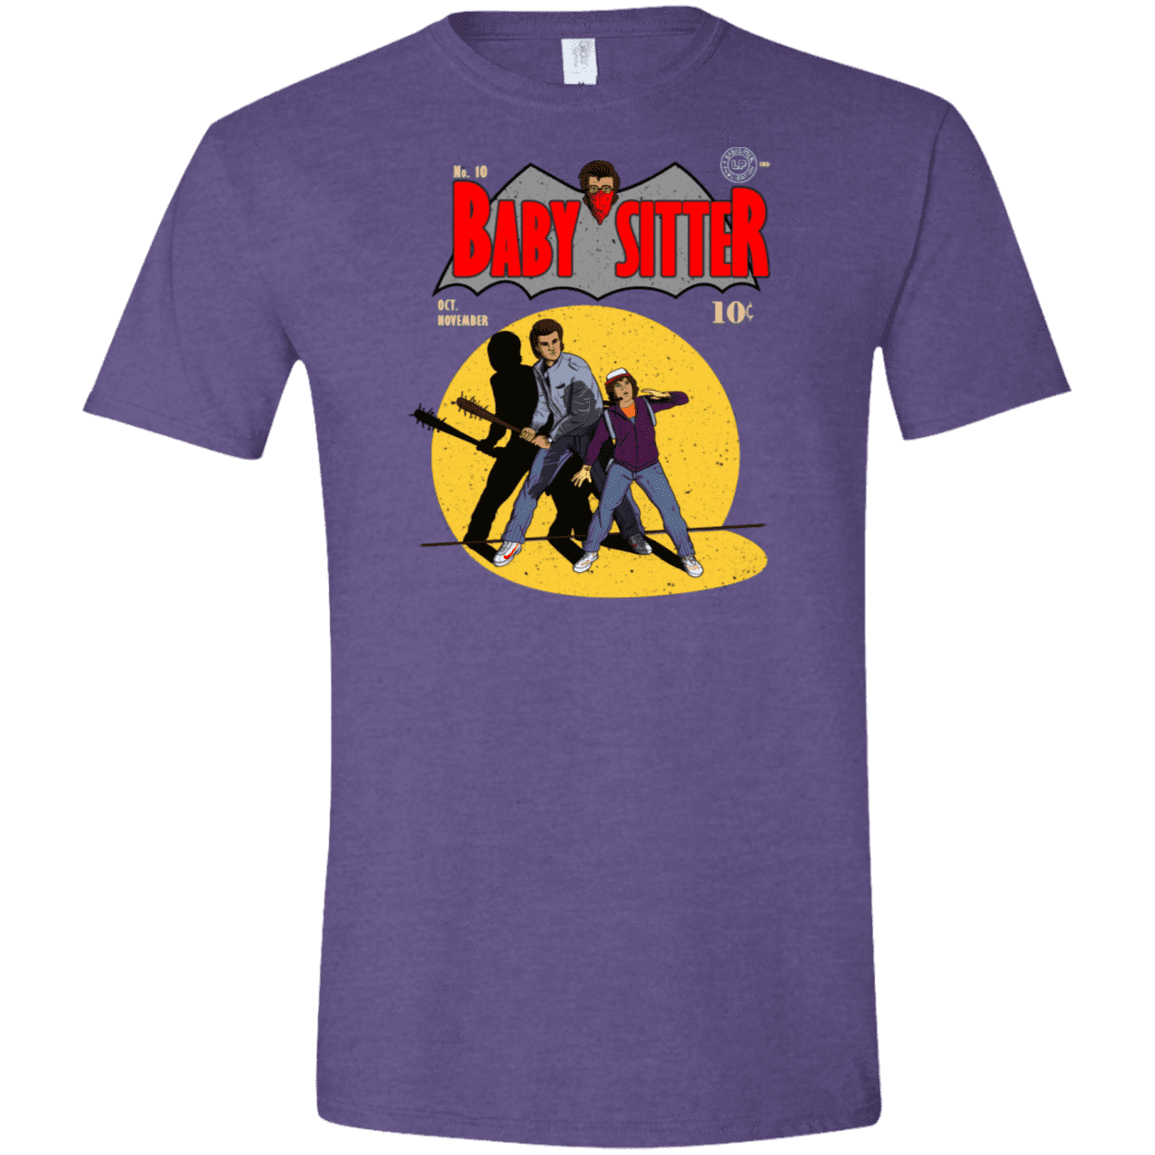 T-Shirts Heather Purple / S Babysitter Batman Men's Semi-Fitted Softstyle